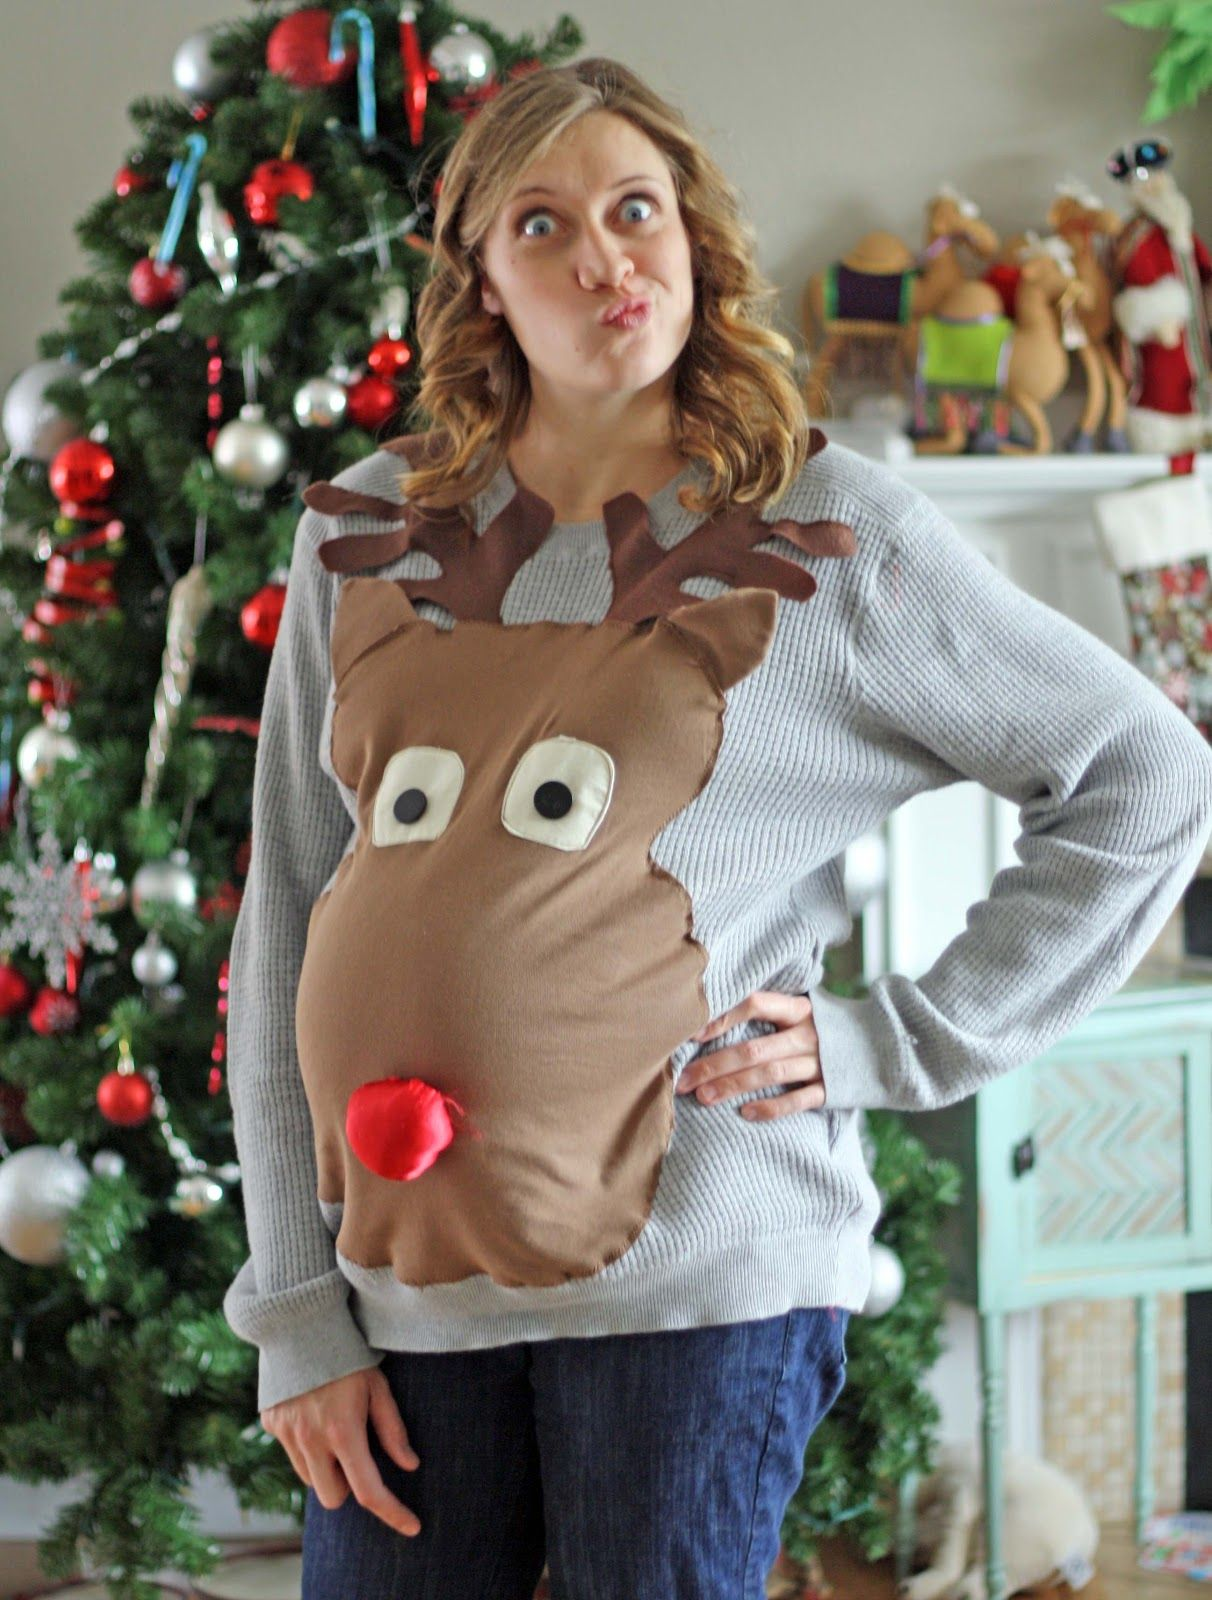 ed53cd6023d Ugly sweater